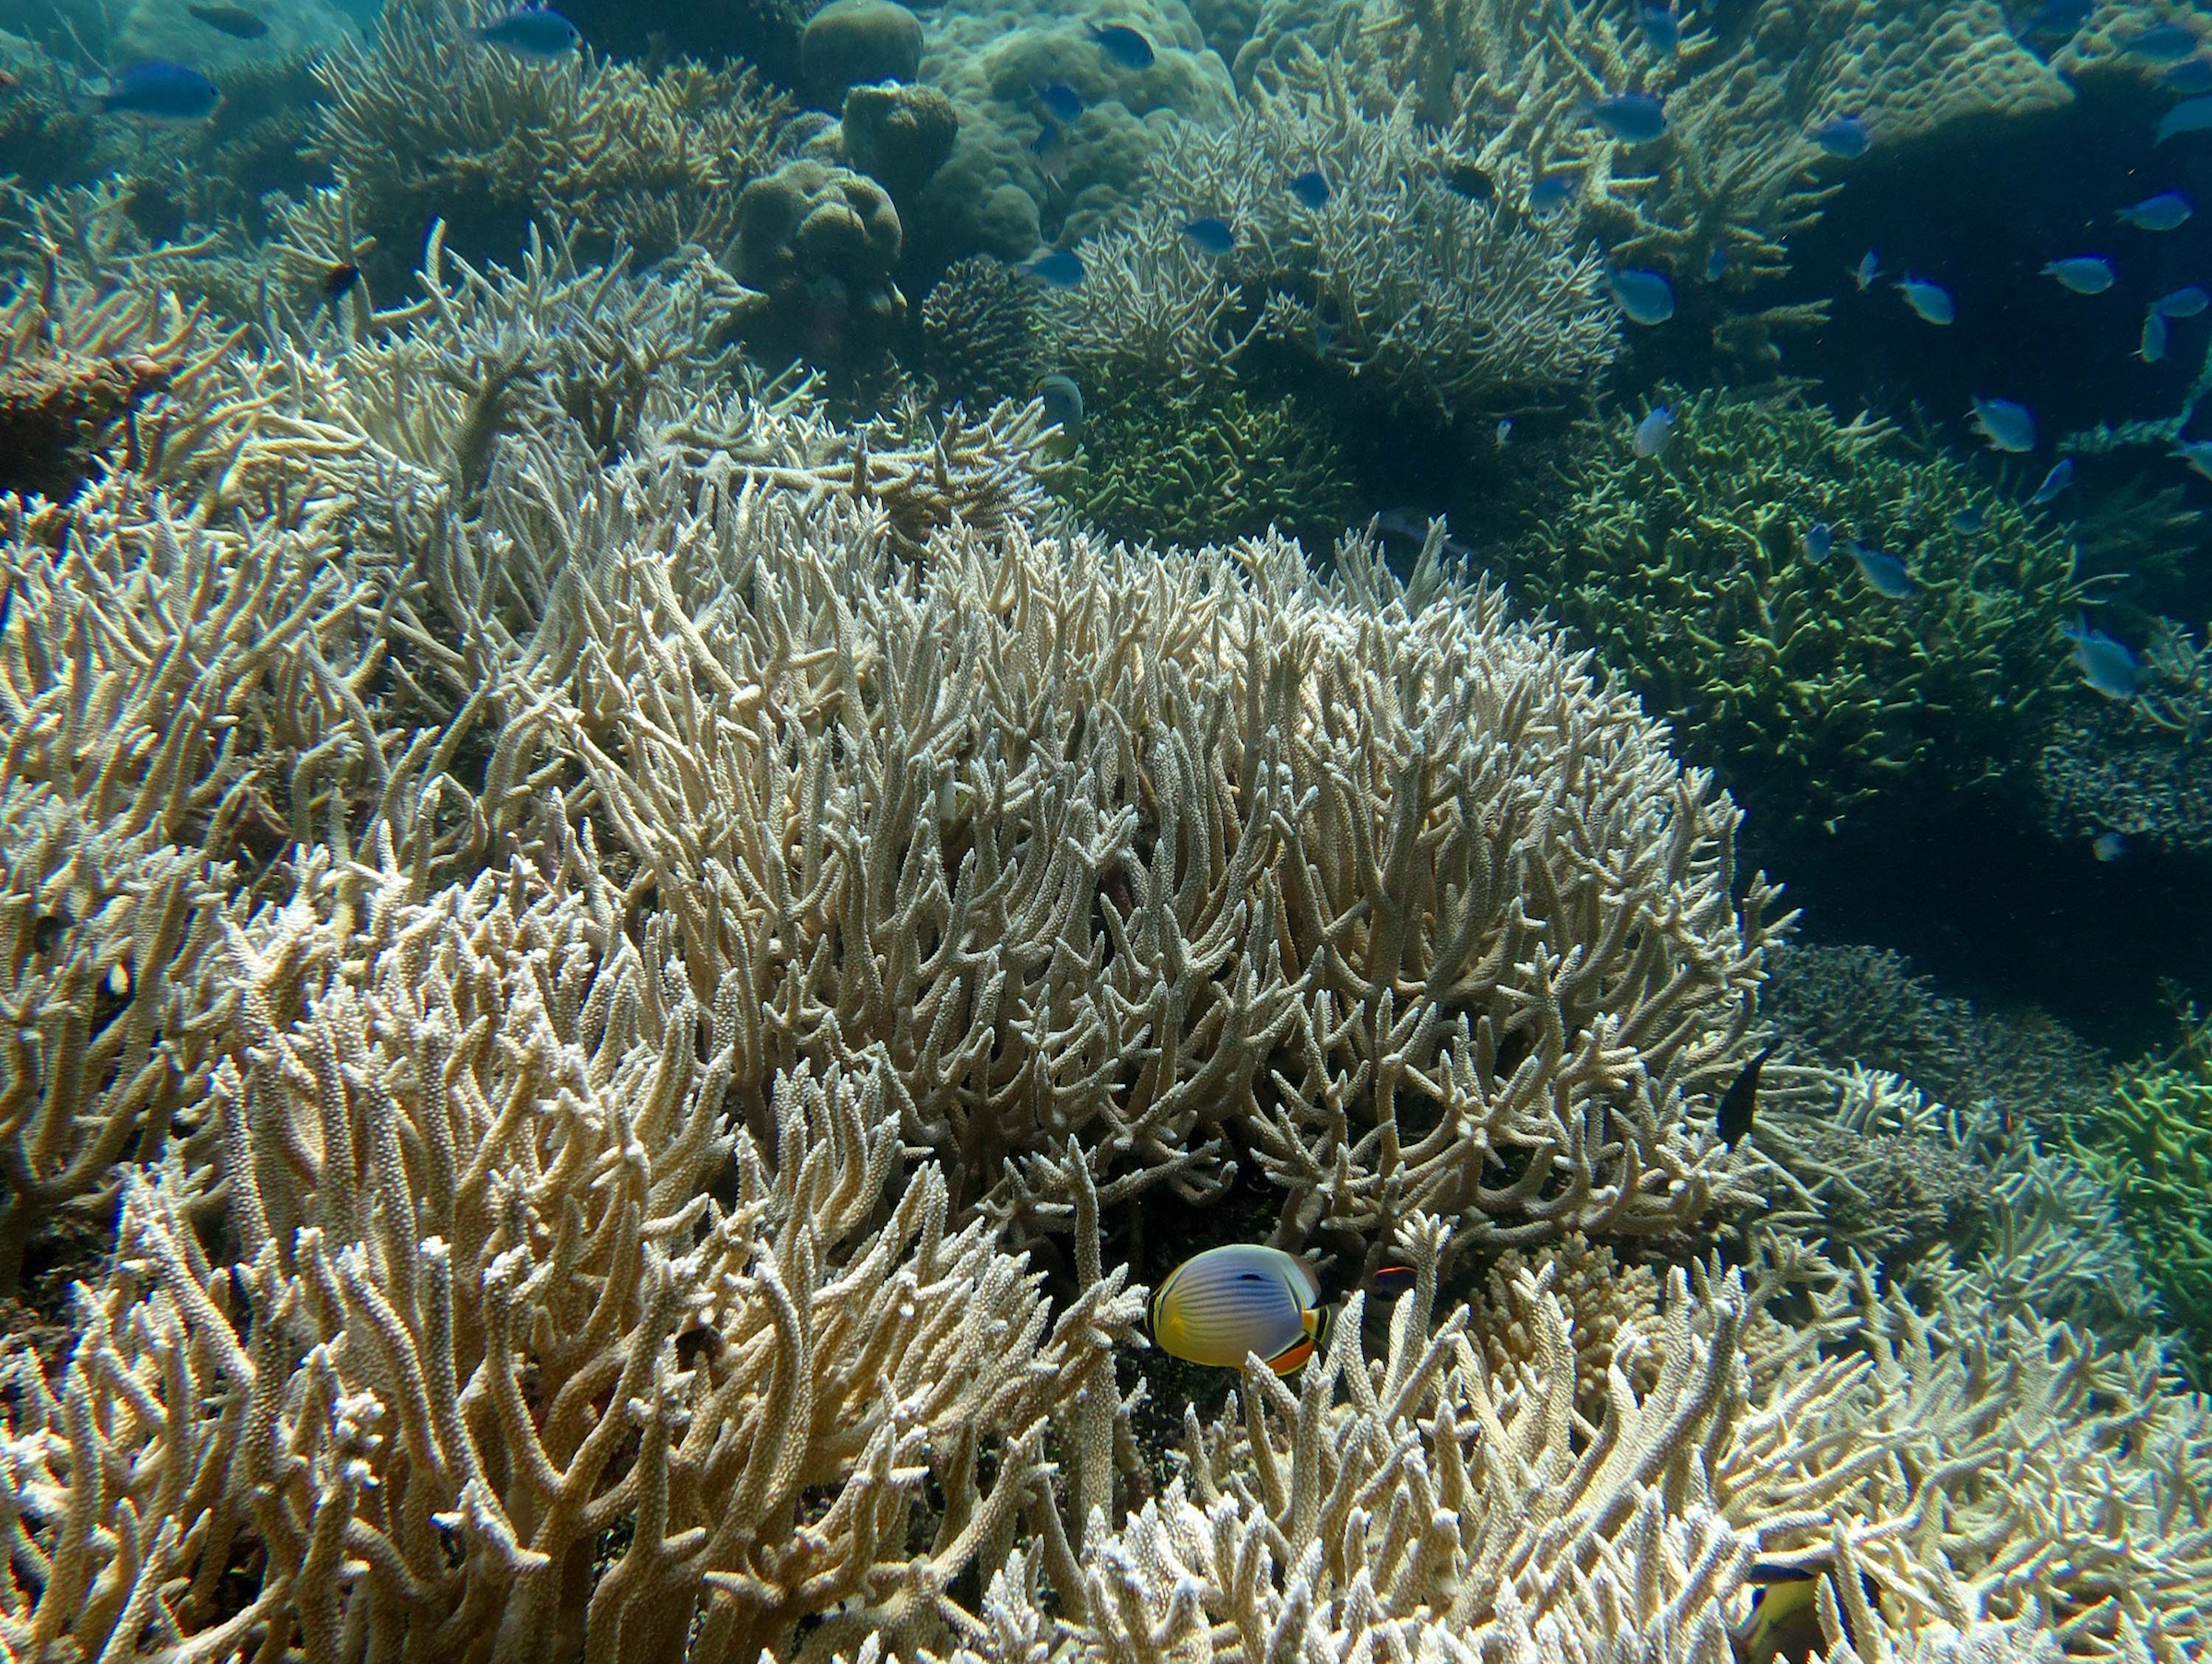 A new study has found that sea level rise poses yet another threat to coral growth, health, and preservation.